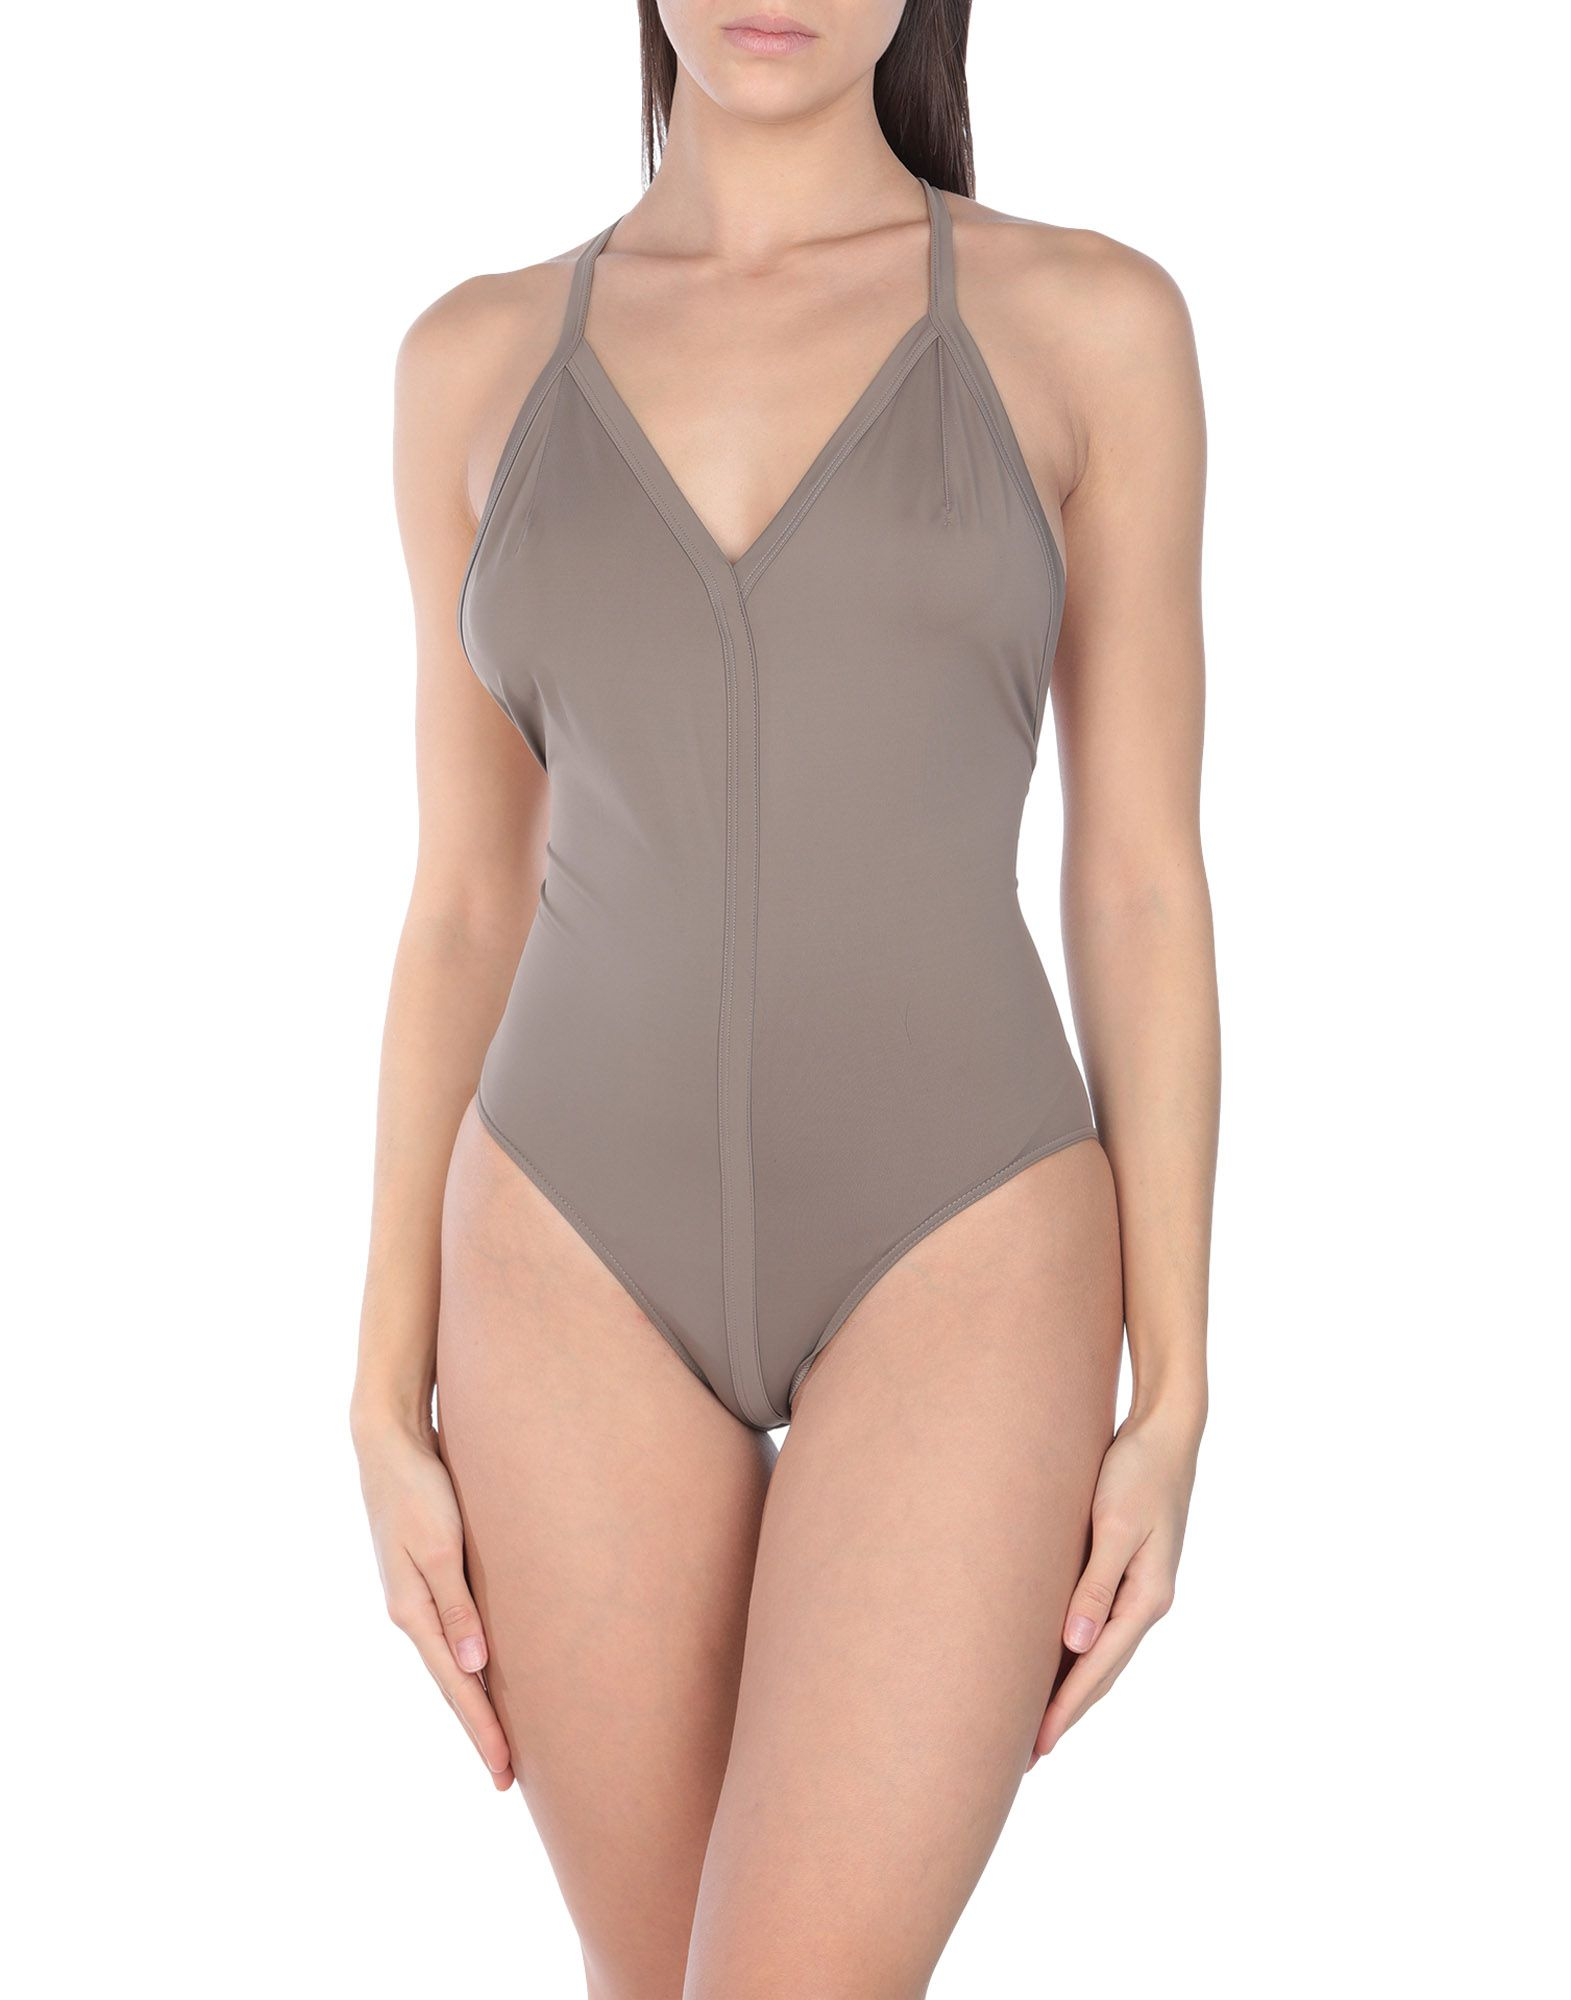 RICK OWENS One-piece swimsuits. synthetic jersey, no appliqués, basic solid color, stretch. 80% Polyamide, 20% Elastane